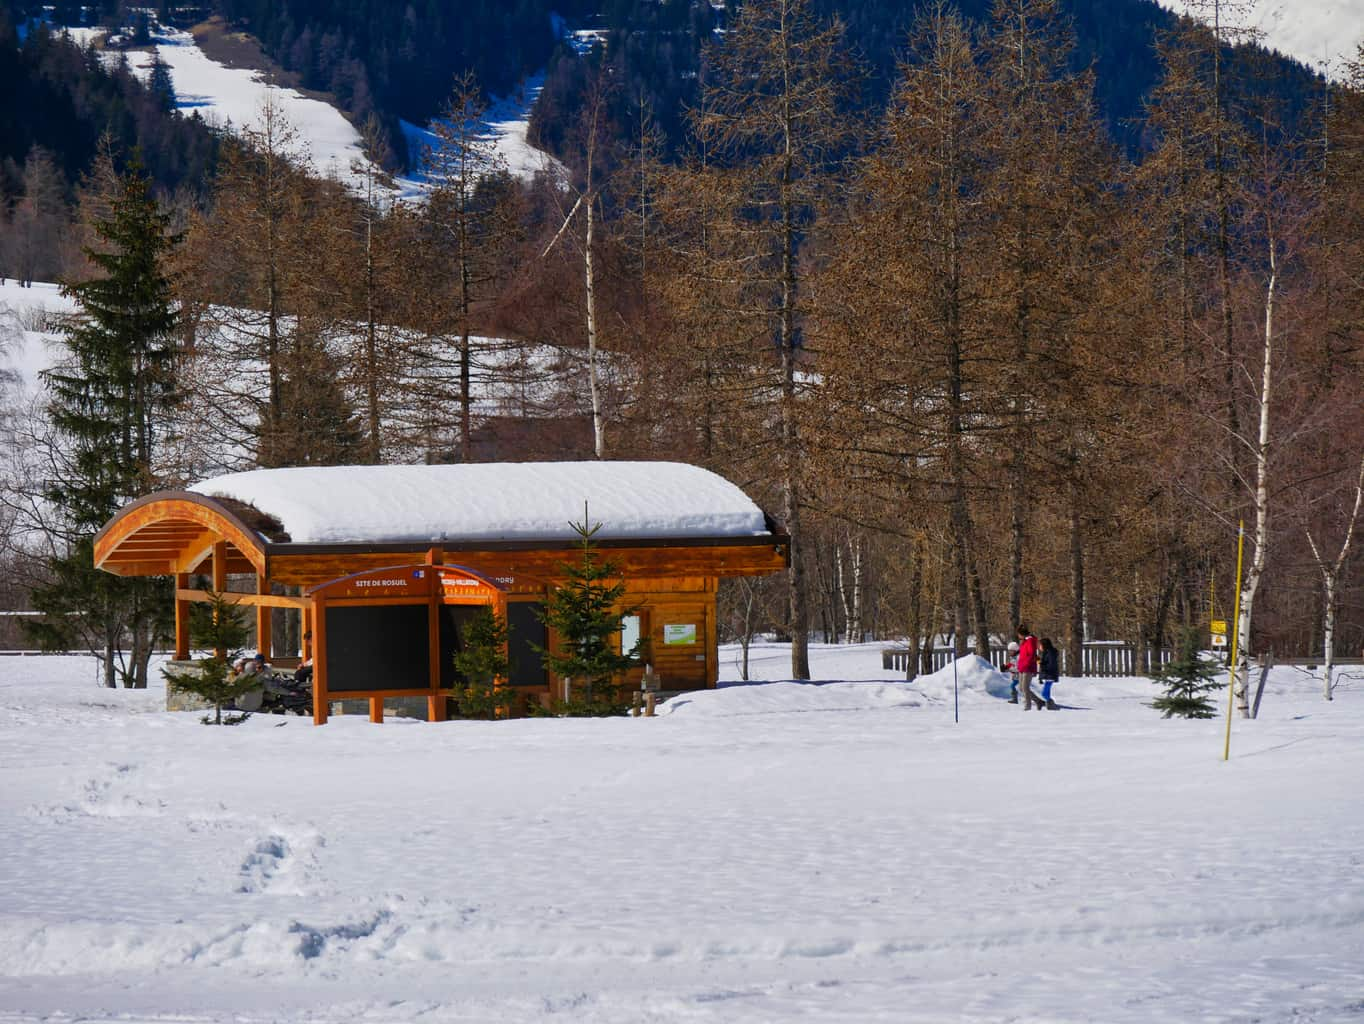 Wooden picnic hut covered in snow